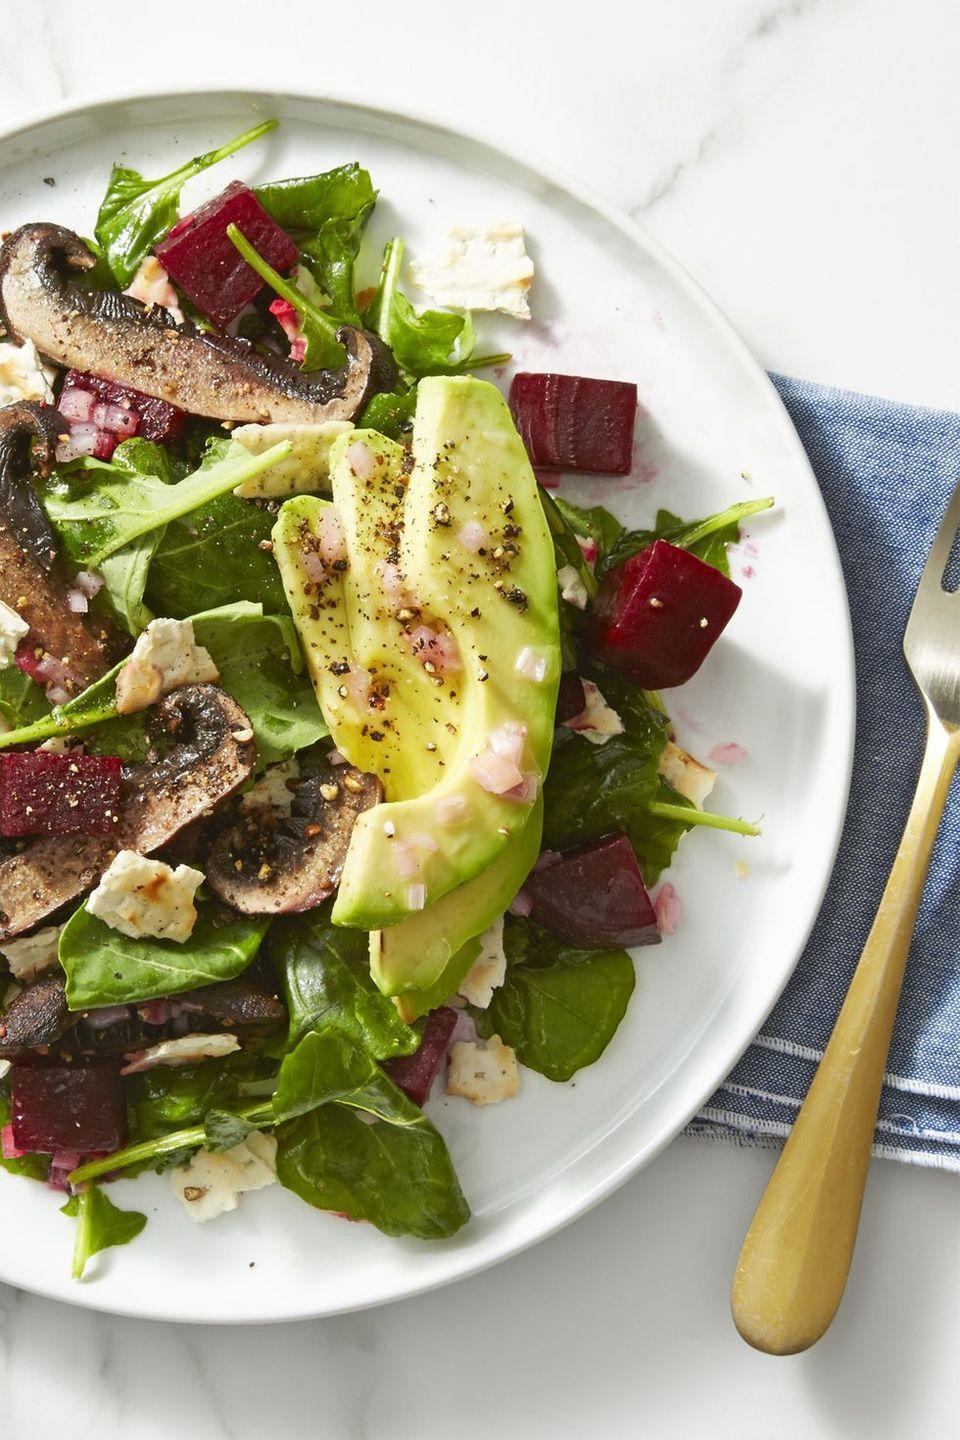 """<p>Crushed matzo pieces add a delicious crunch to this loaded salad. Have it for lunch during Passover!</p><p><em><a href=""""https://www.goodhousekeeping.com/food-recipes/a43225/beet-mushroom-avocado-salad-recipe/"""" rel=""""nofollow noopener"""" target=""""_blank"""" data-ylk=""""slk:Get the recipe for Beet, Mushroom and Avocado Salad »"""" class=""""link rapid-noclick-resp"""">Get the recipe for Beet, Mushroom and Avocado Salad »</a></em></p><p><strong>RELATED: </strong><a href=""""https://www.goodhousekeeping.com/food-recipes/healthy/g960/healthy-lunch-ideas/"""" rel=""""nofollow noopener"""" target=""""_blank"""" data-ylk=""""slk:70 Tasty, Healthy Lunch Ideas That Will Truly Keep You Full Until Dinner"""" class=""""link rapid-noclick-resp"""">70 Tasty, Healthy Lunch Ideas That Will Truly Keep You Full Until Dinner</a><br></p>"""